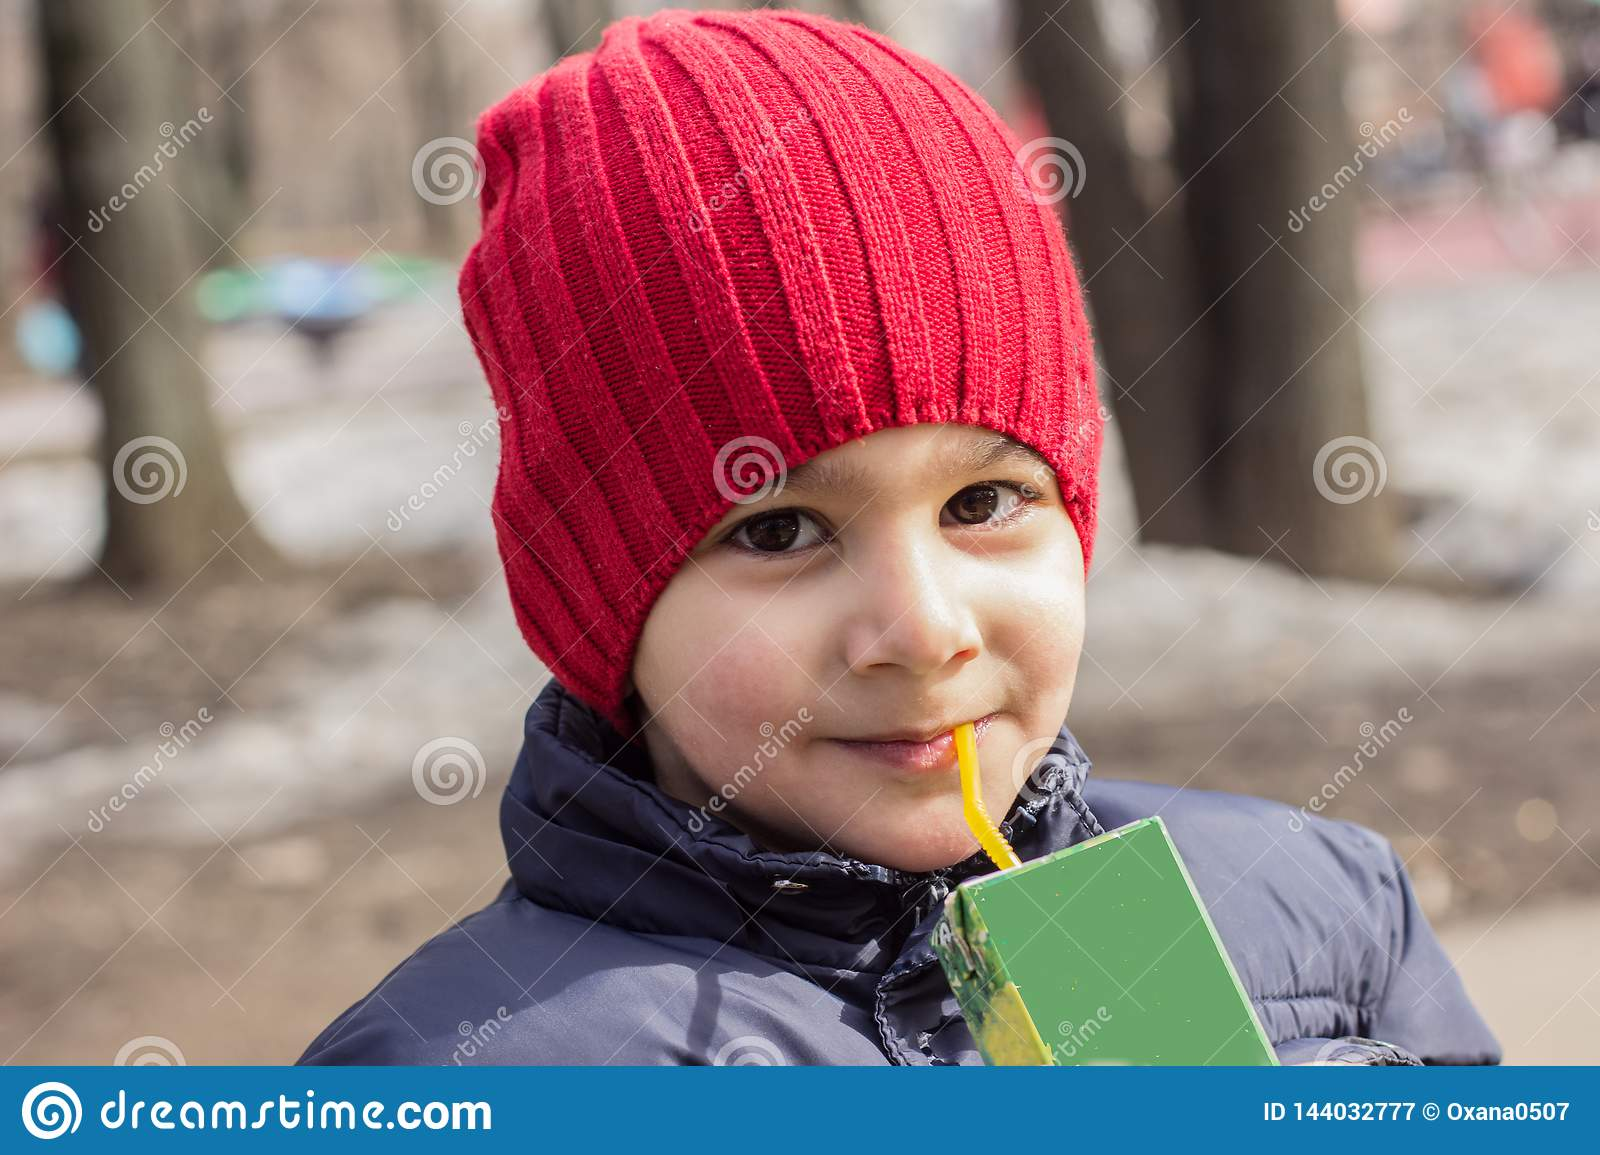 The child drinks juice in the Playground. emotional close-up portrait.